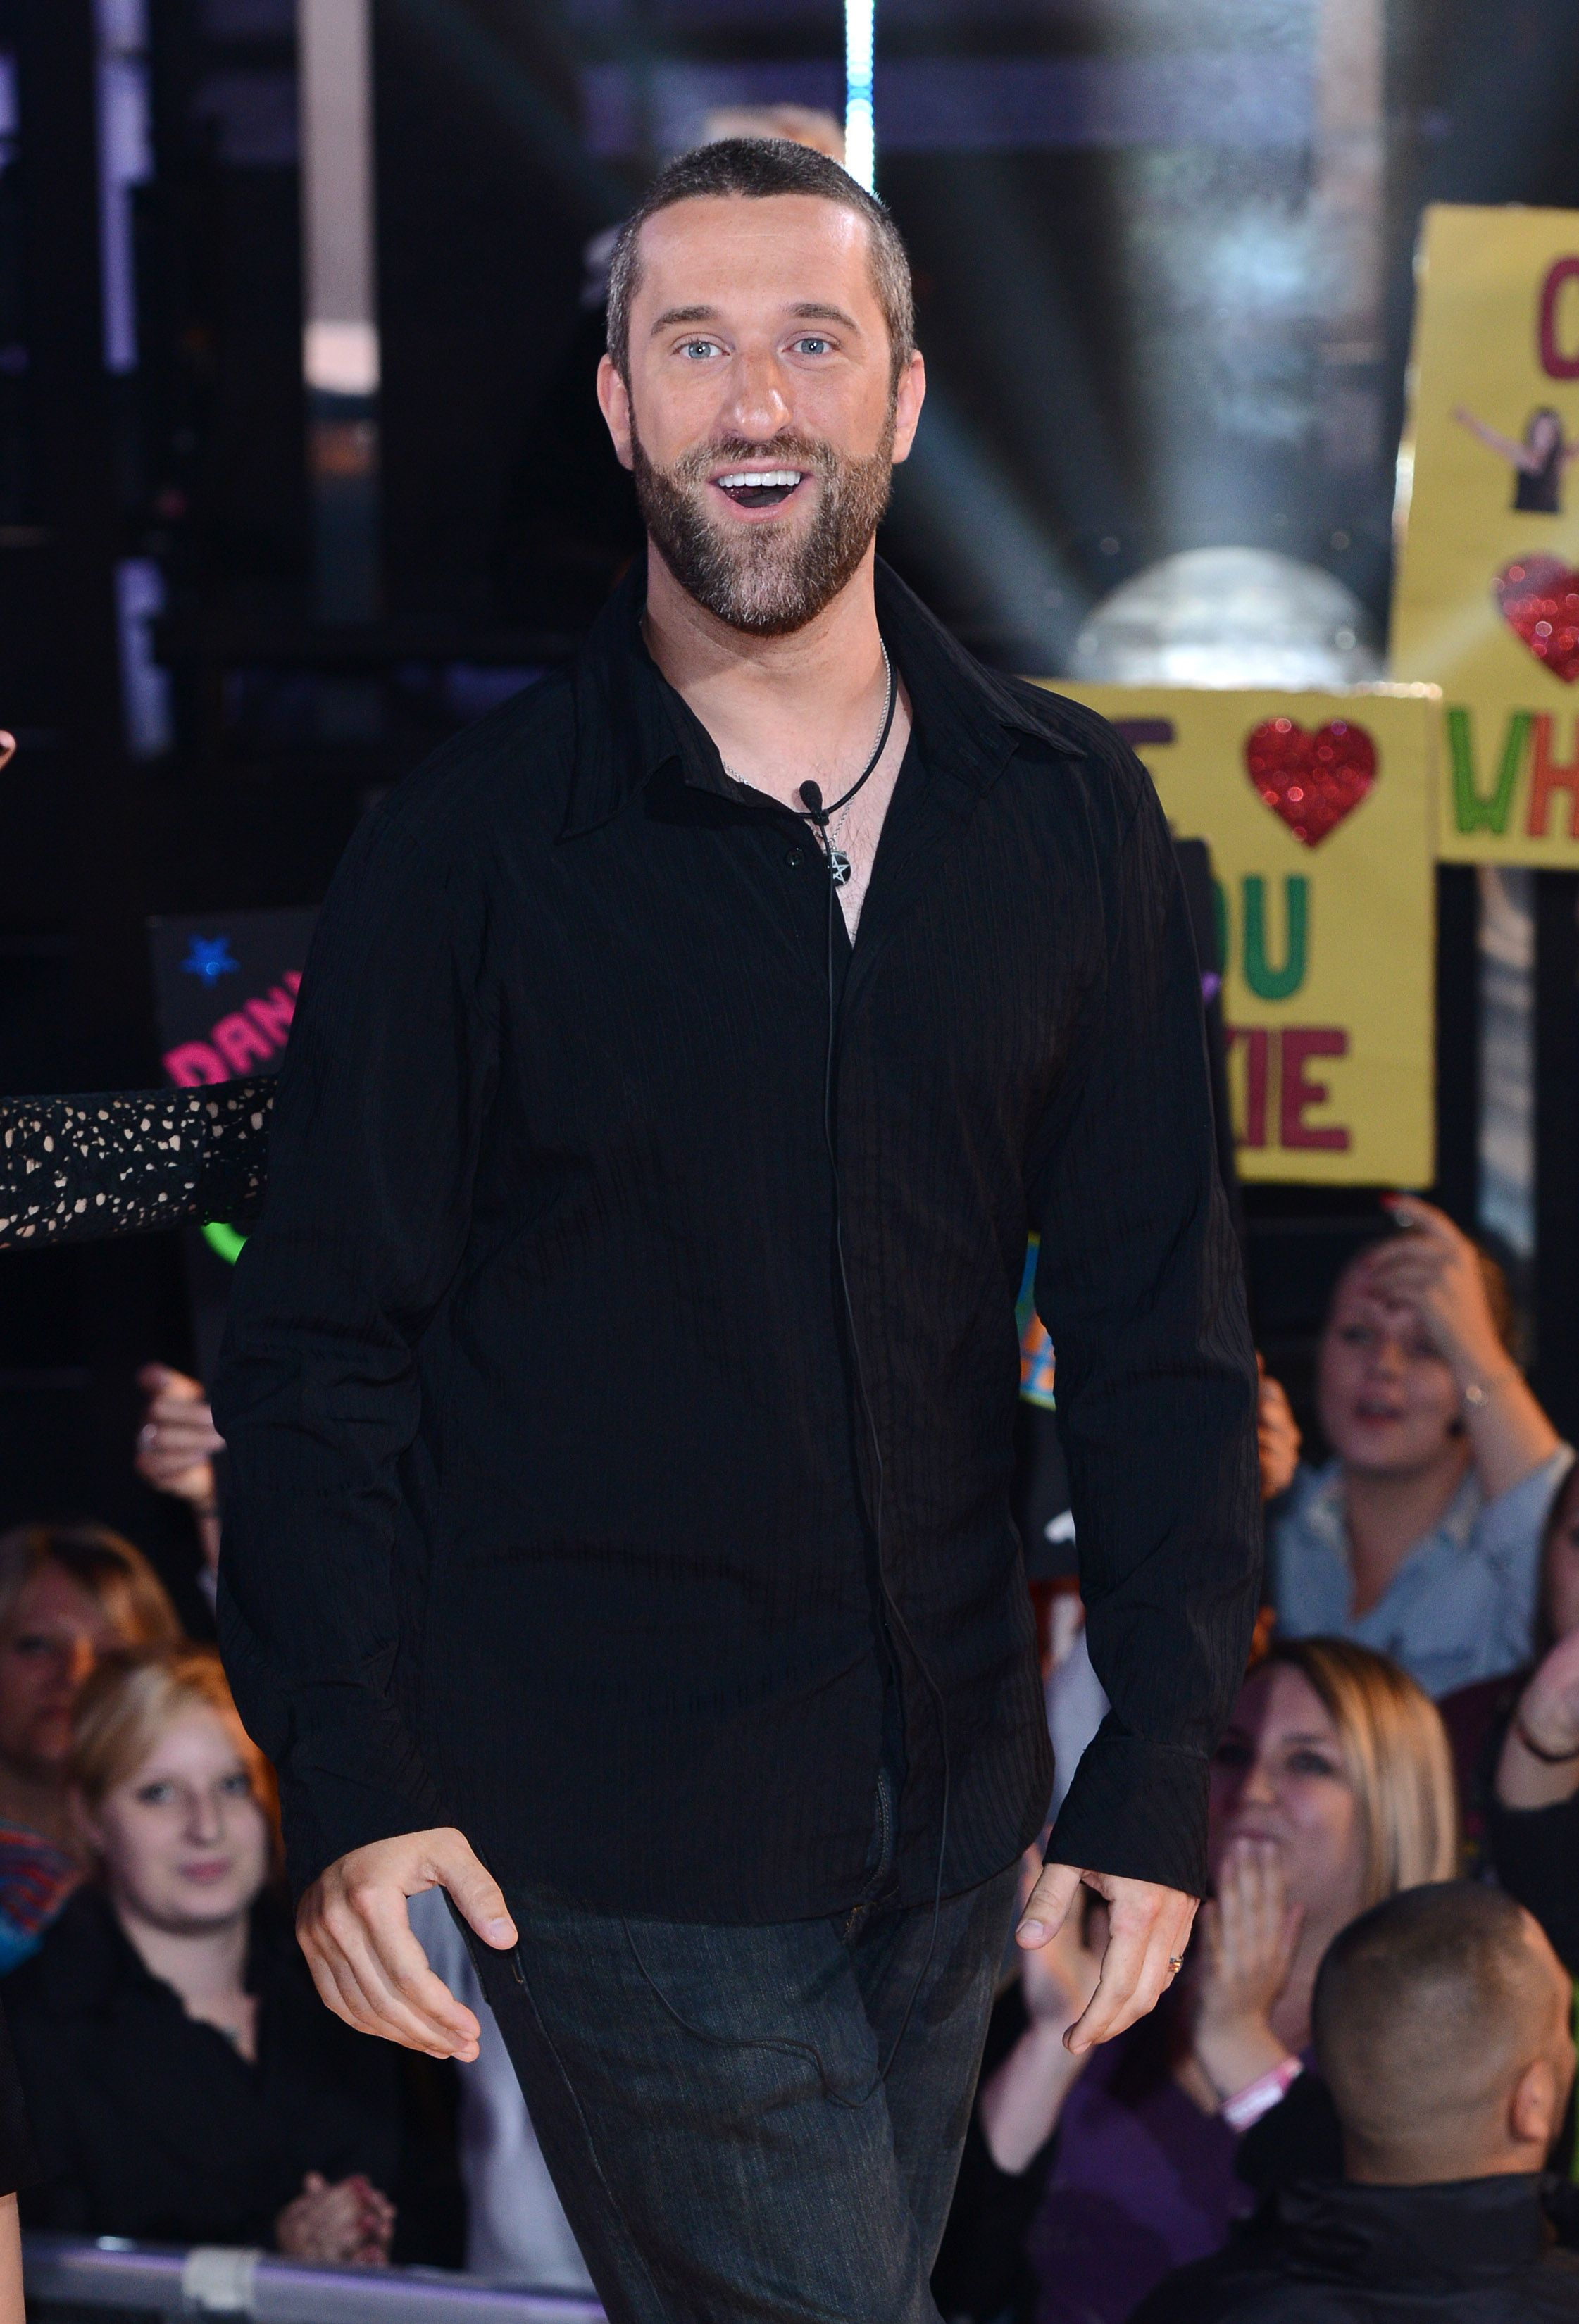 """Dustin Diamond leaving the """"Celebrity Big Brother"""" house in September 2013 in Borehamwood, England   Source: Getty Images"""